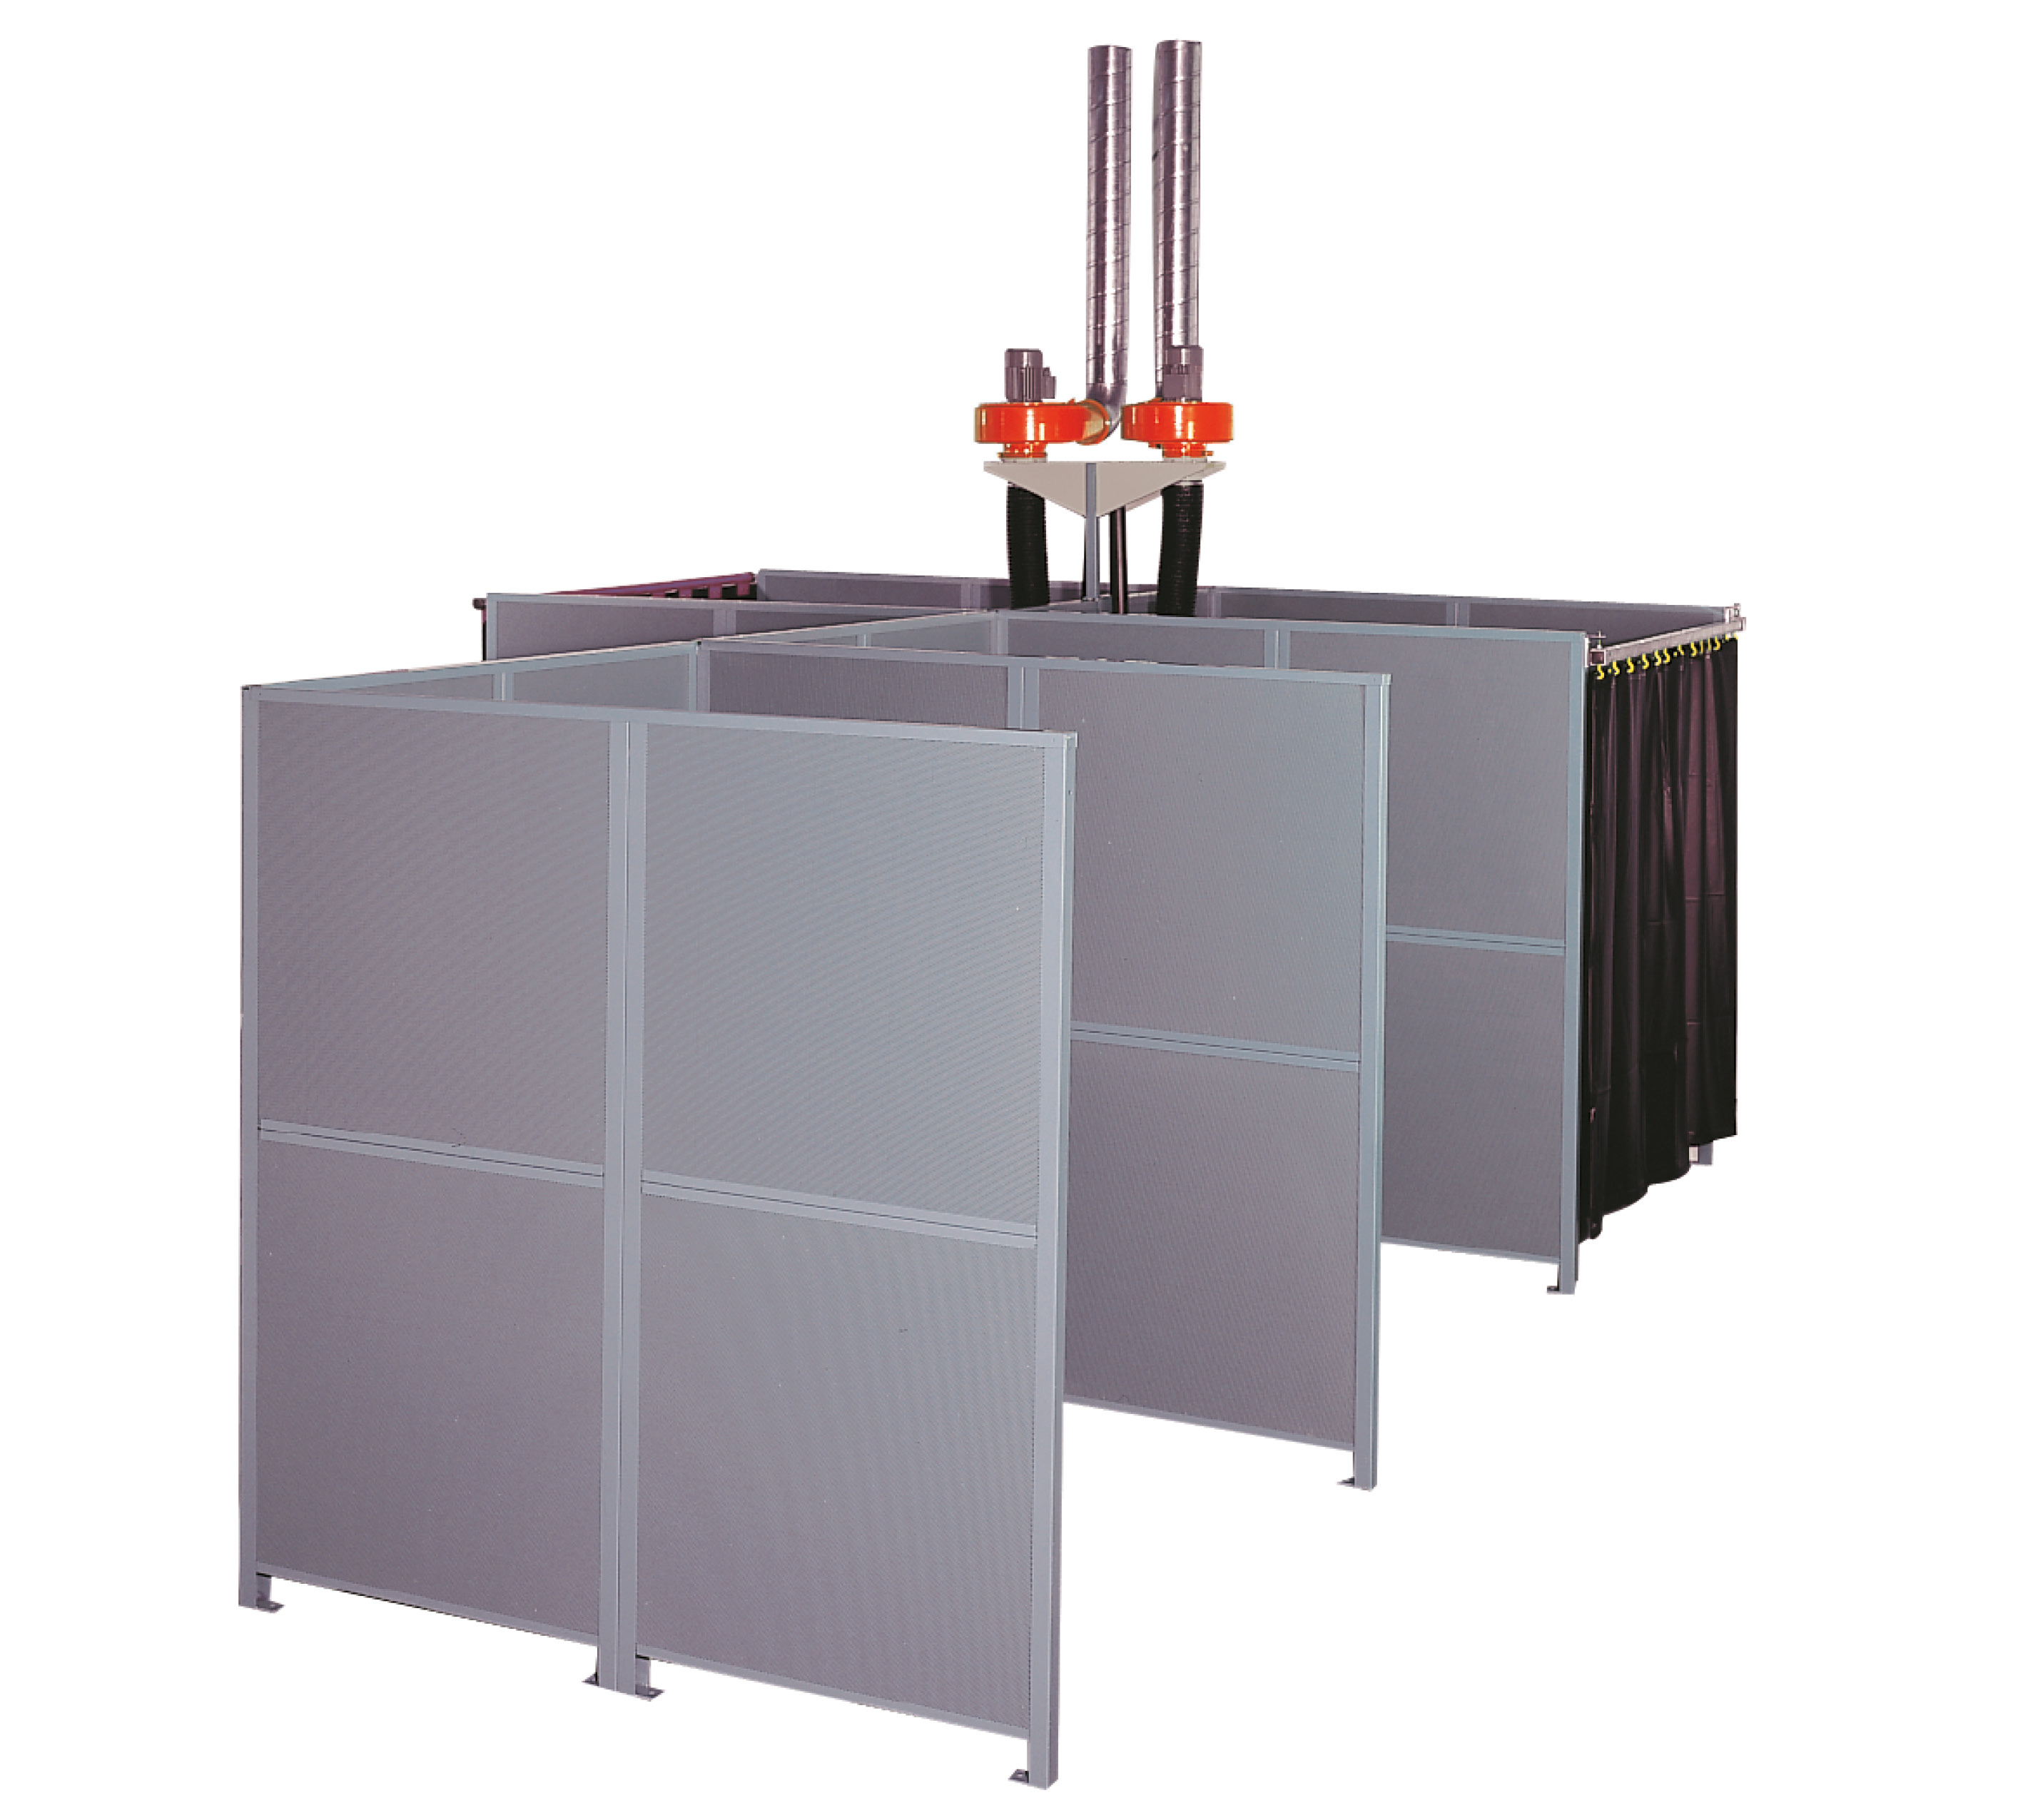 welding booths from modular partition wall systems and